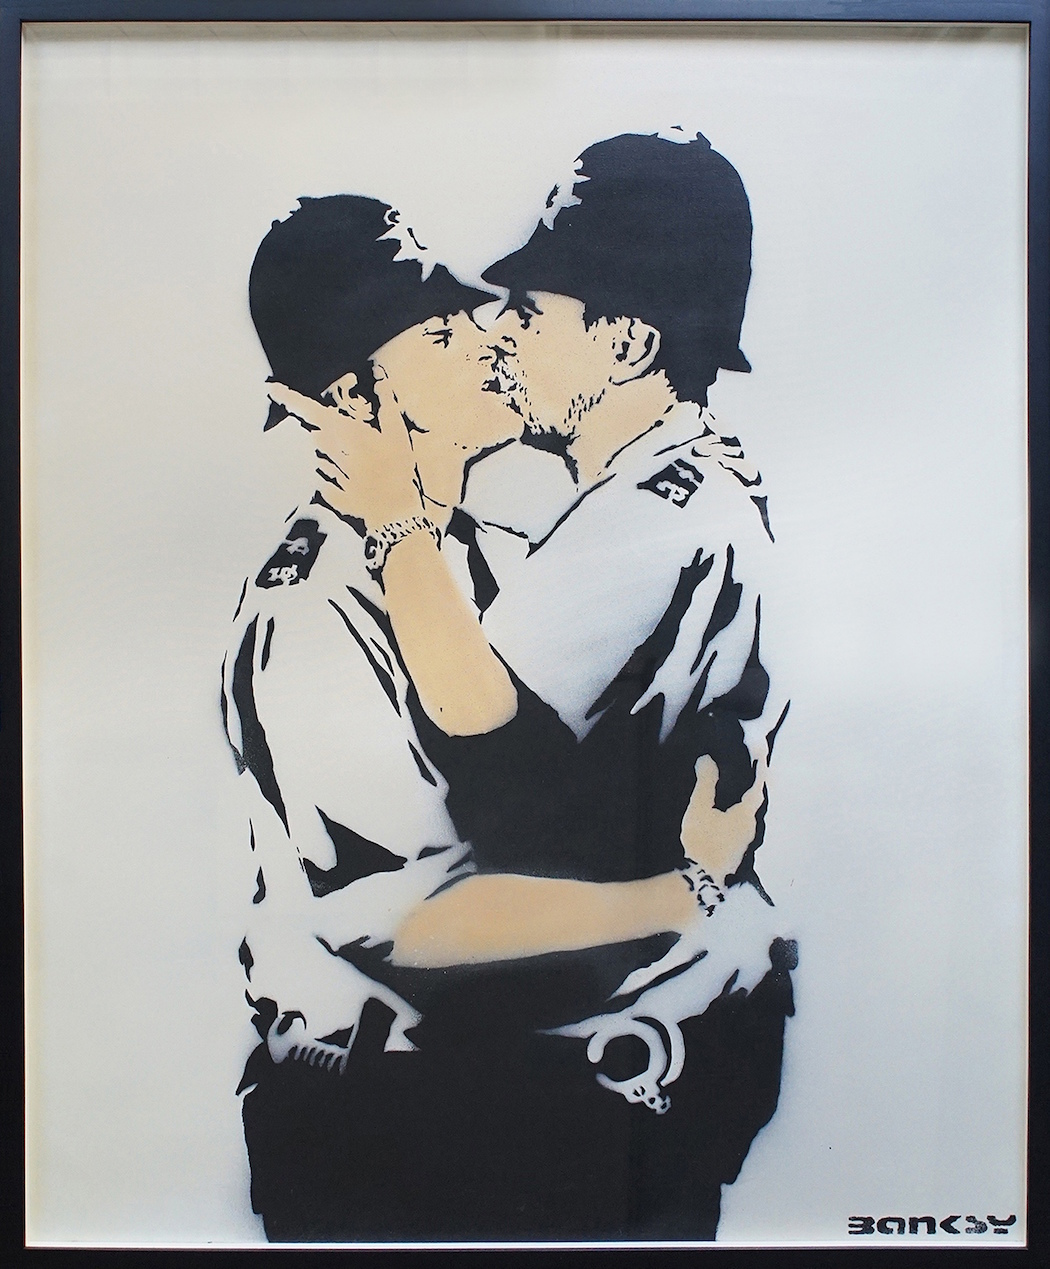 Lazarides, Banksy, Kissing Coppers, Acrylic and Spraypaint, Stencil on Canvas, 126.8x102cm, 2005